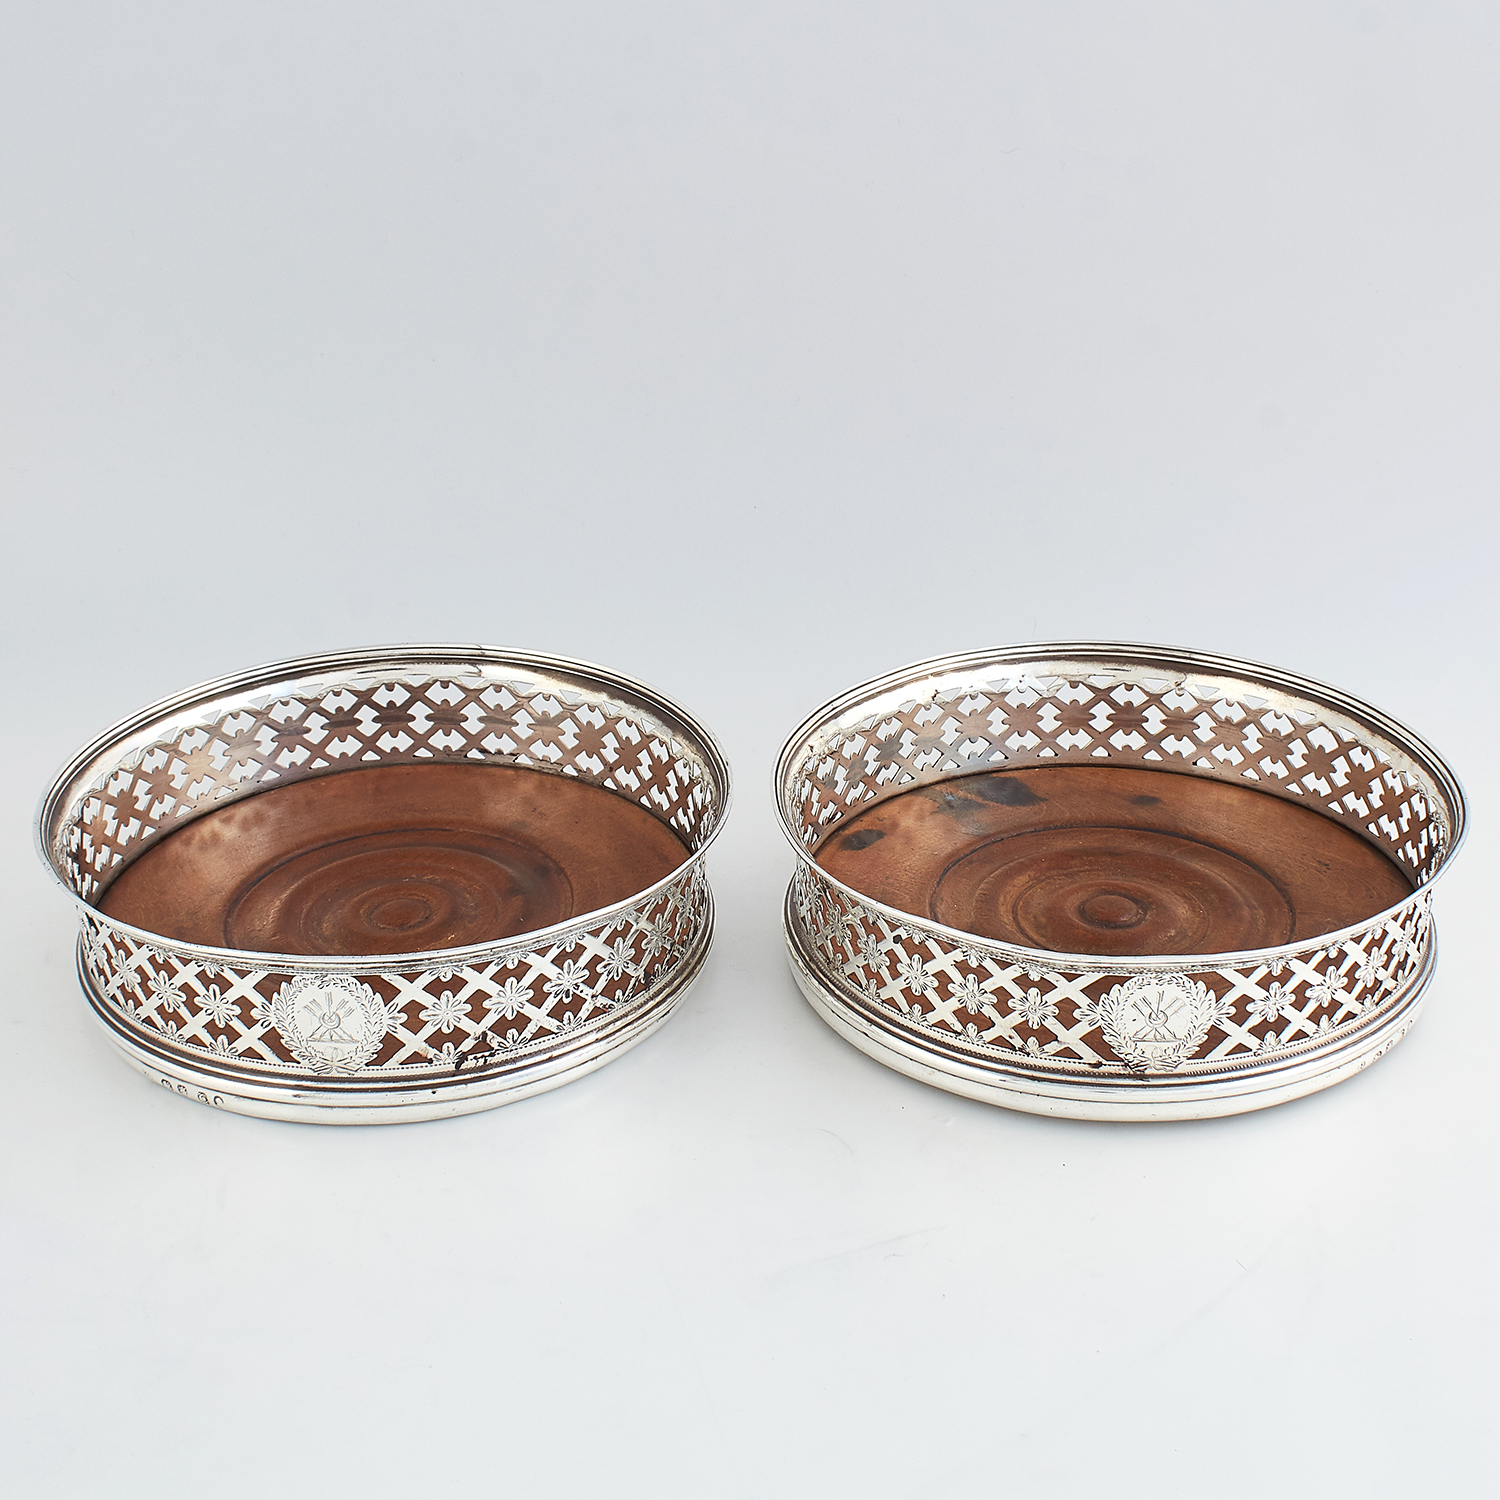 PAIR OF ANTIQUE GEORGE III STERLING SILVER WINE COASTERS, ROBERT & DAVID HENNELL, LONDON 1798 of - Image 2 of 3